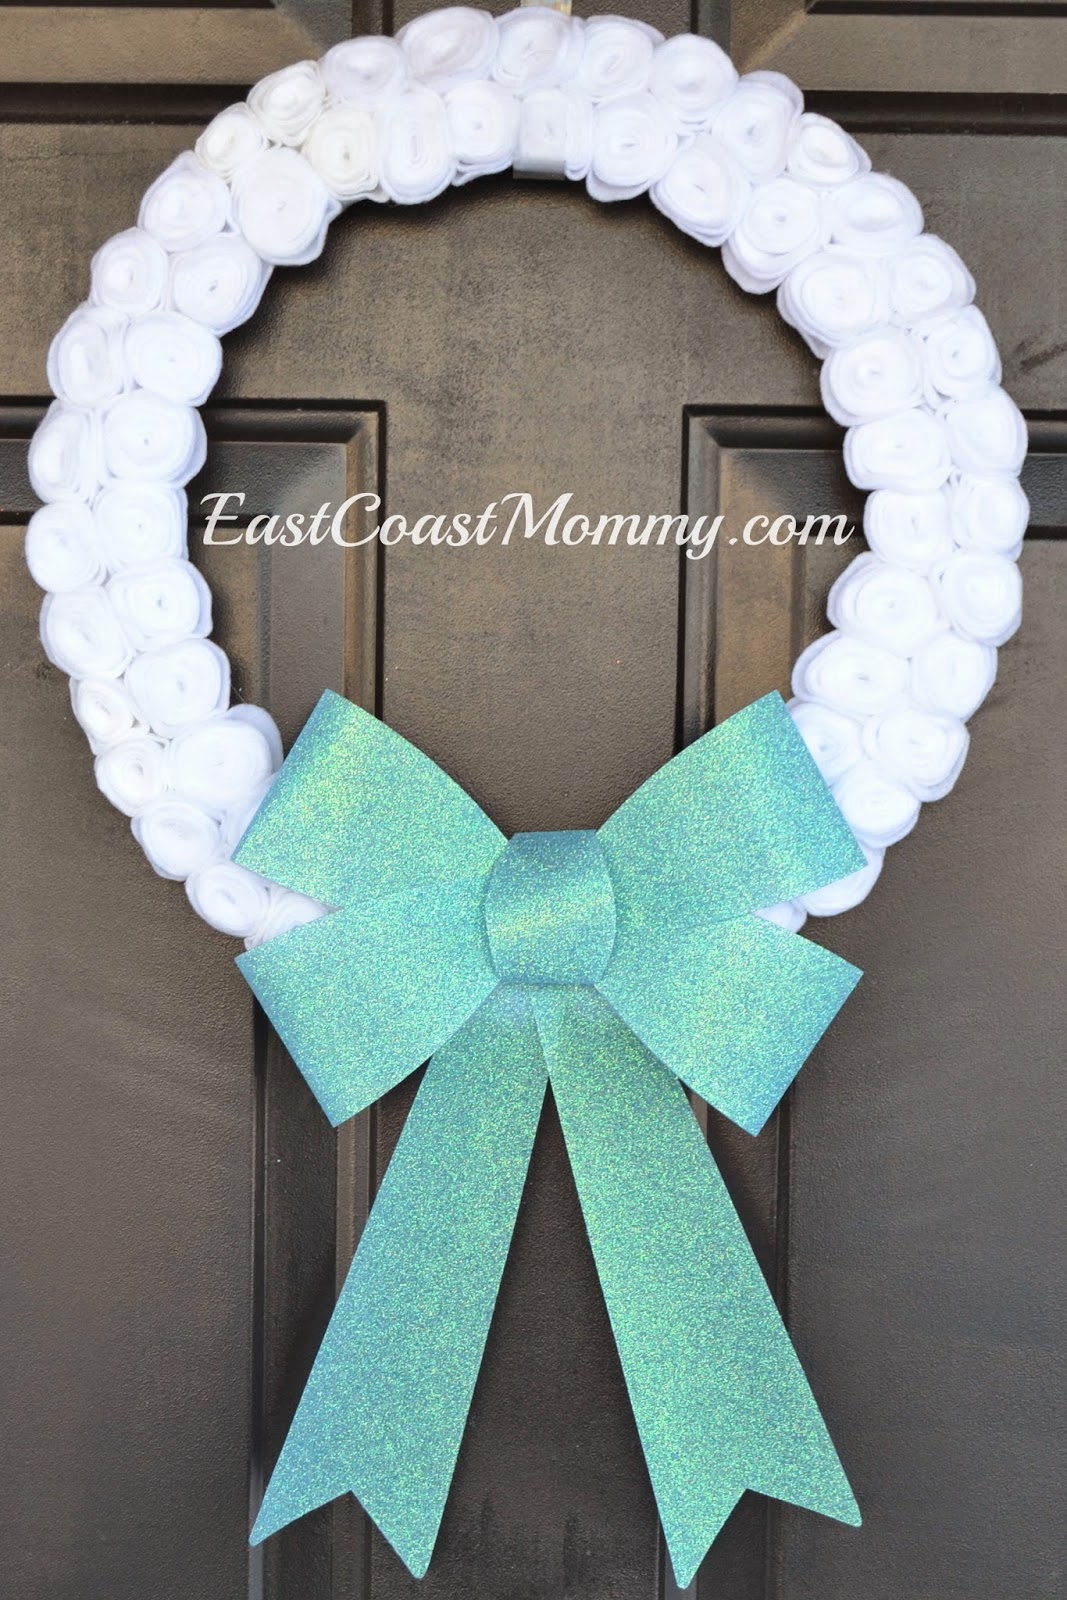 Diy winter wreaths for front door -  Christmas Wreath And I Try To Come Up With A Pretty Diy Winter Wreath To Replace It Today I Hung This Elegant Felt Wreath On My Front Door